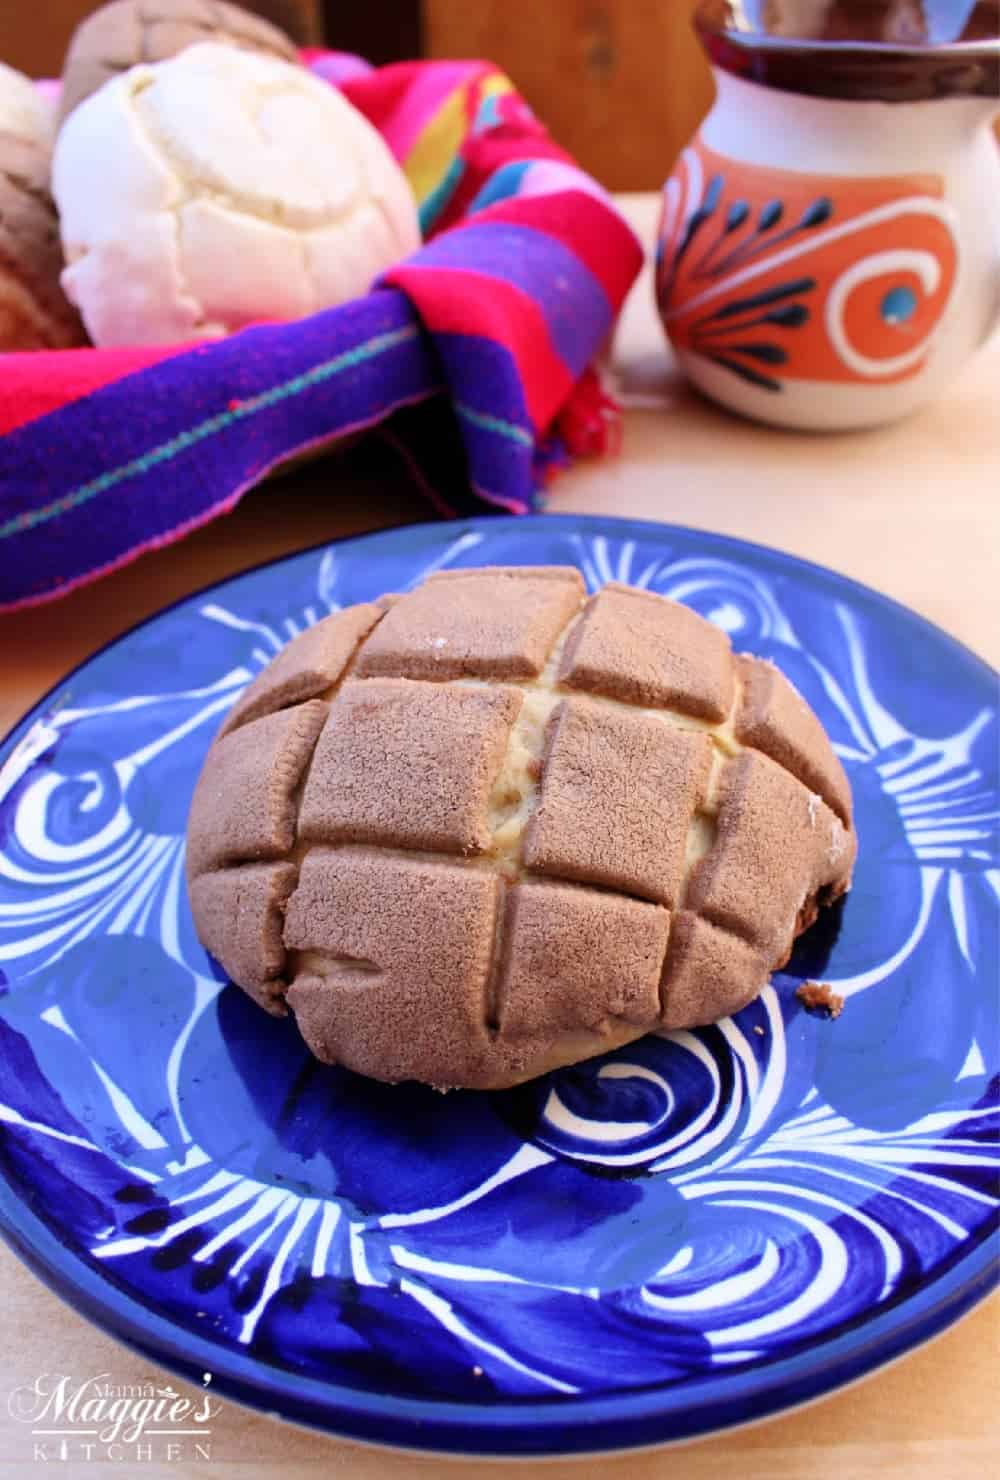 Chocolate concha on a blue plate with a decorative Mexican basket in the background holding more conchas.